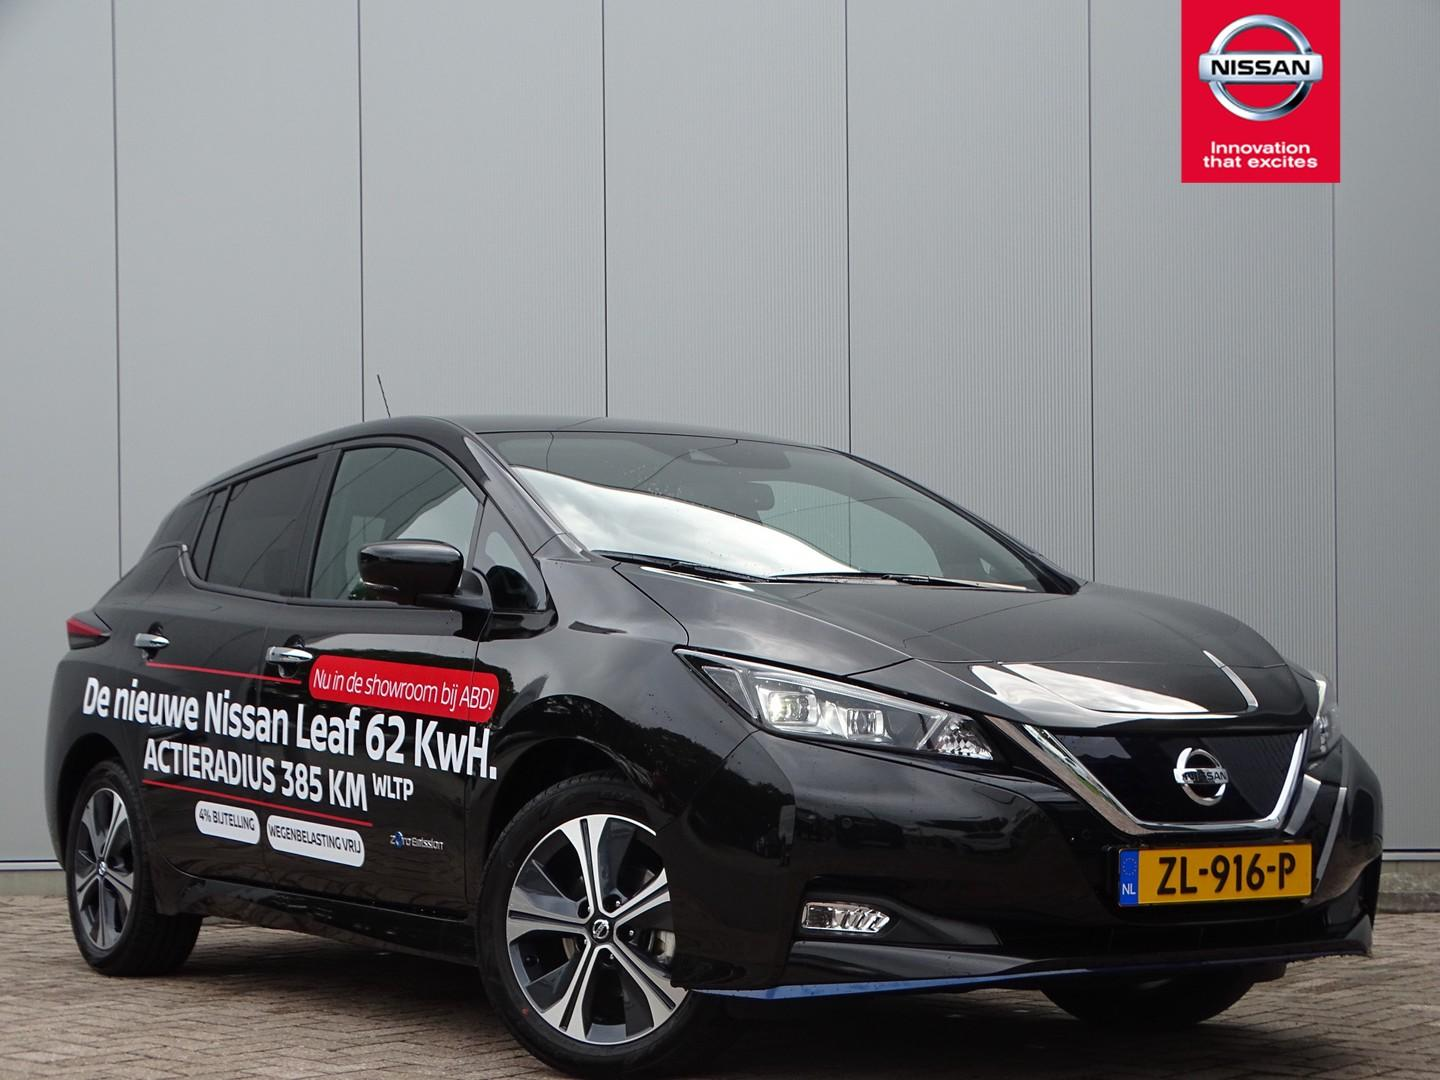 Nissan Leaf E+ tekna 62 kwh excl. btw